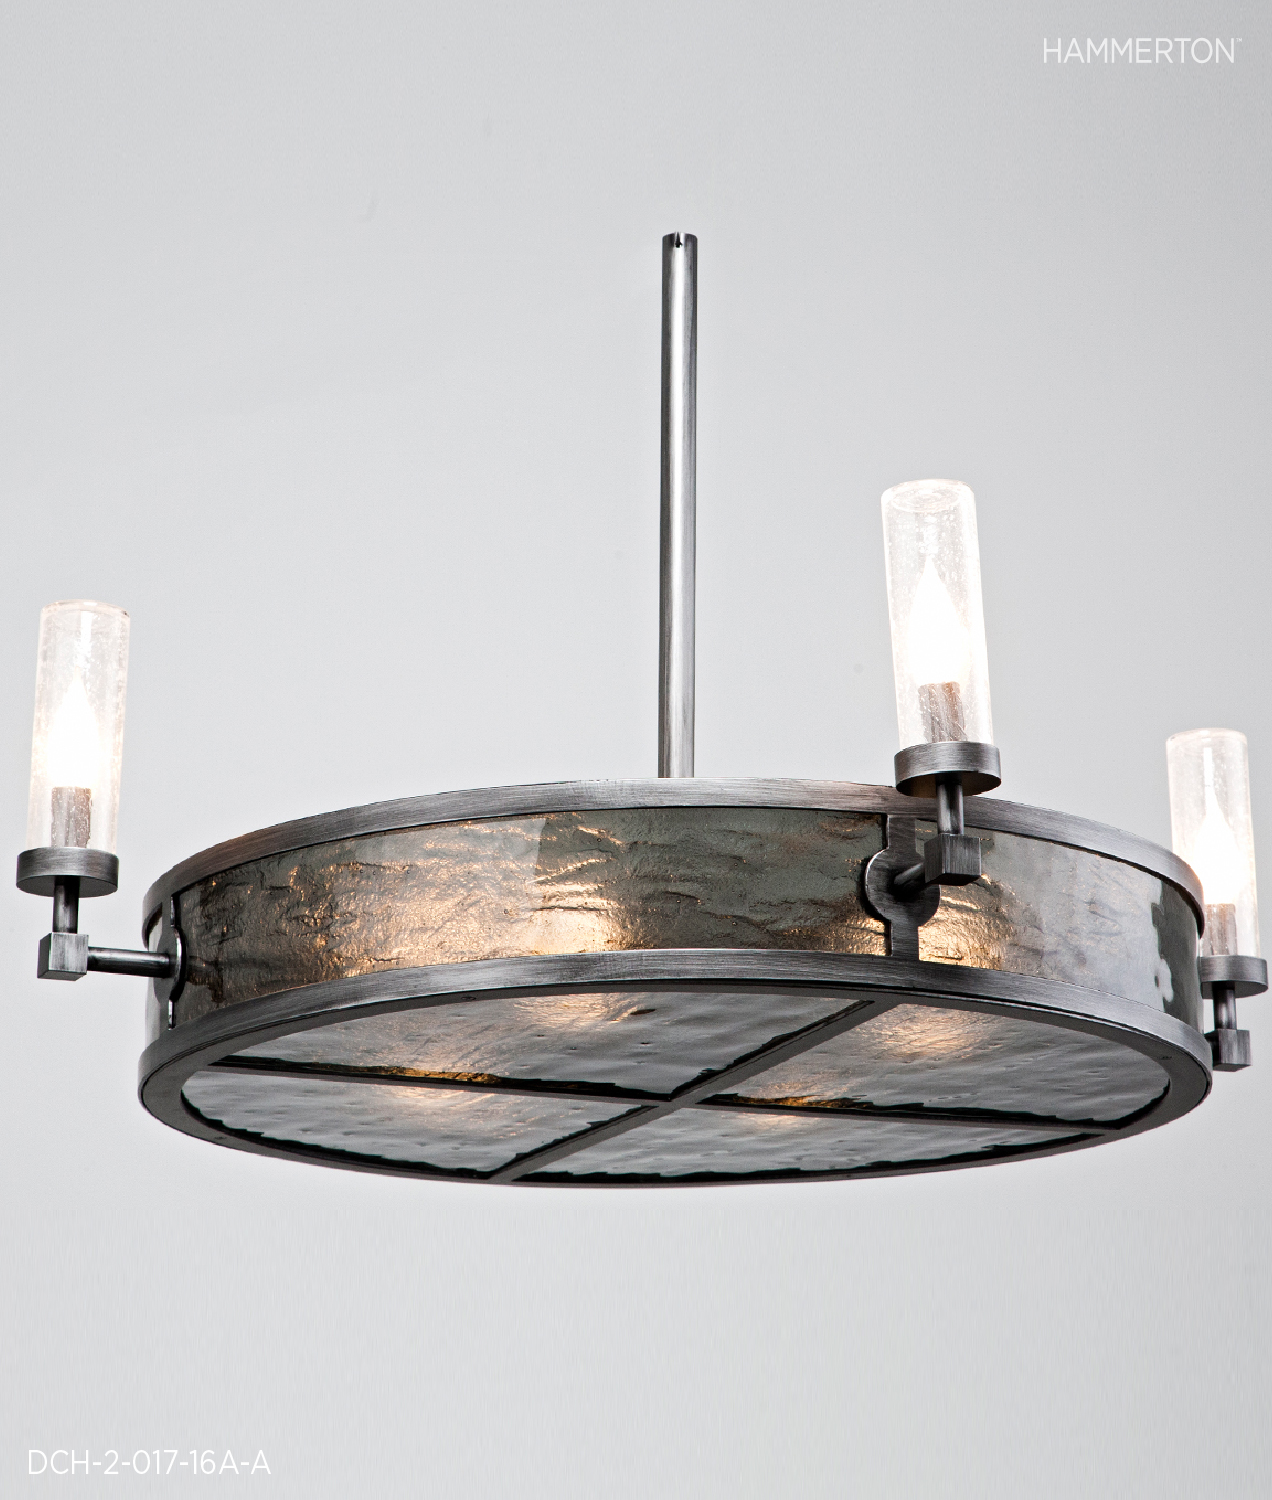 """Candelabra drum, 19"""" OAH x 36""""Dia, with Smoke Granite textured glass lens, Clear Seeded Glass cylinders and Brushed Antique Iron finish.     Fixture: DCH-2-017-16A-A"""